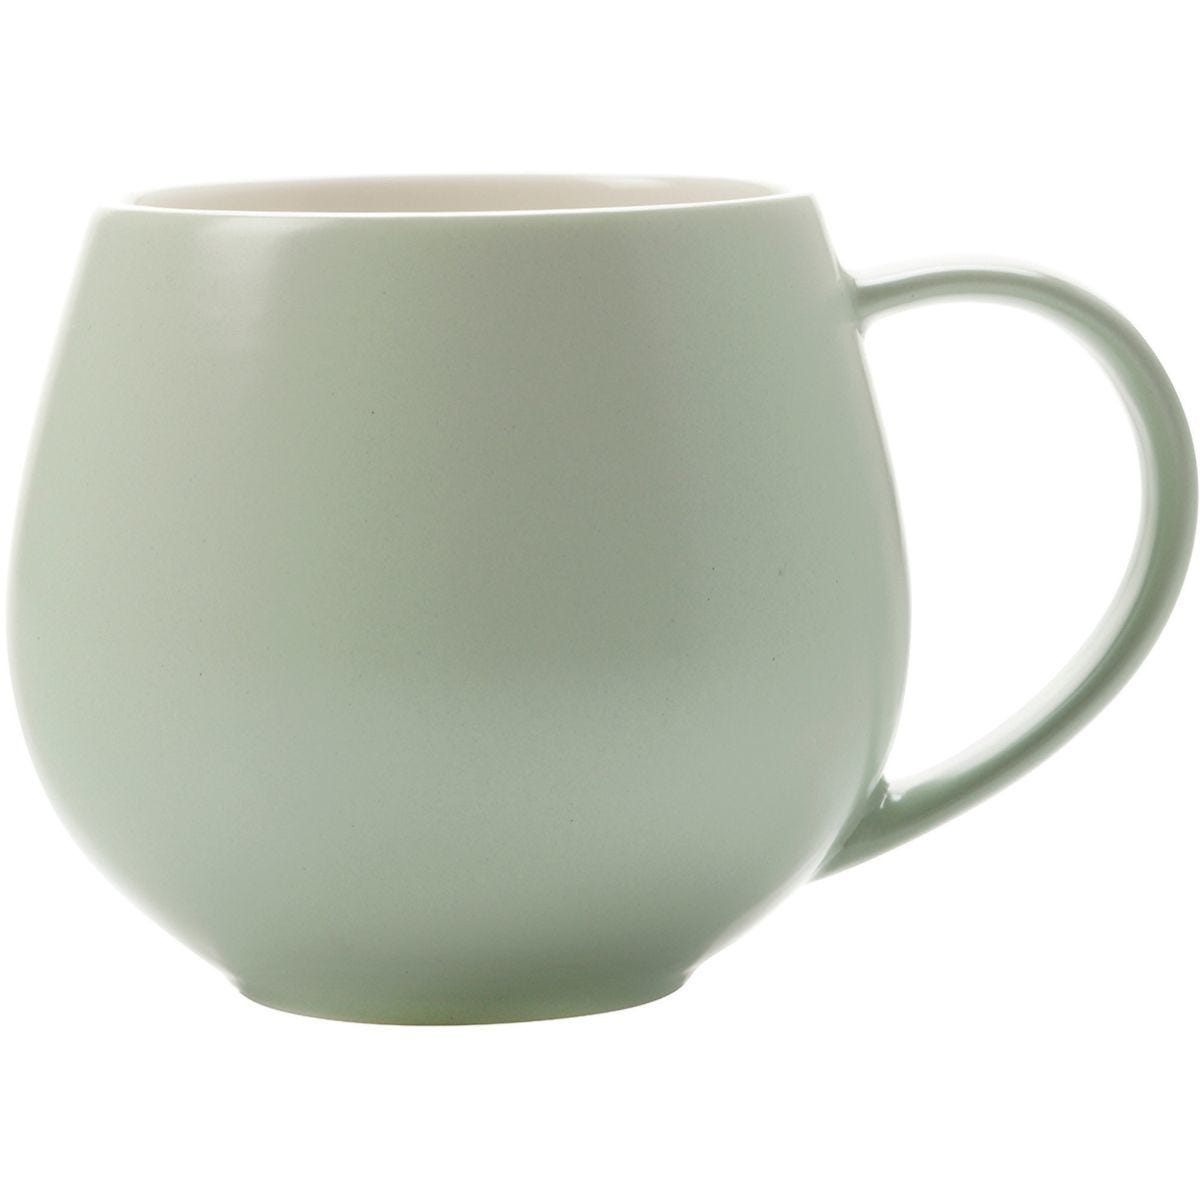 Maxwell & Williams Tint 450ml Snug Mug - Mint